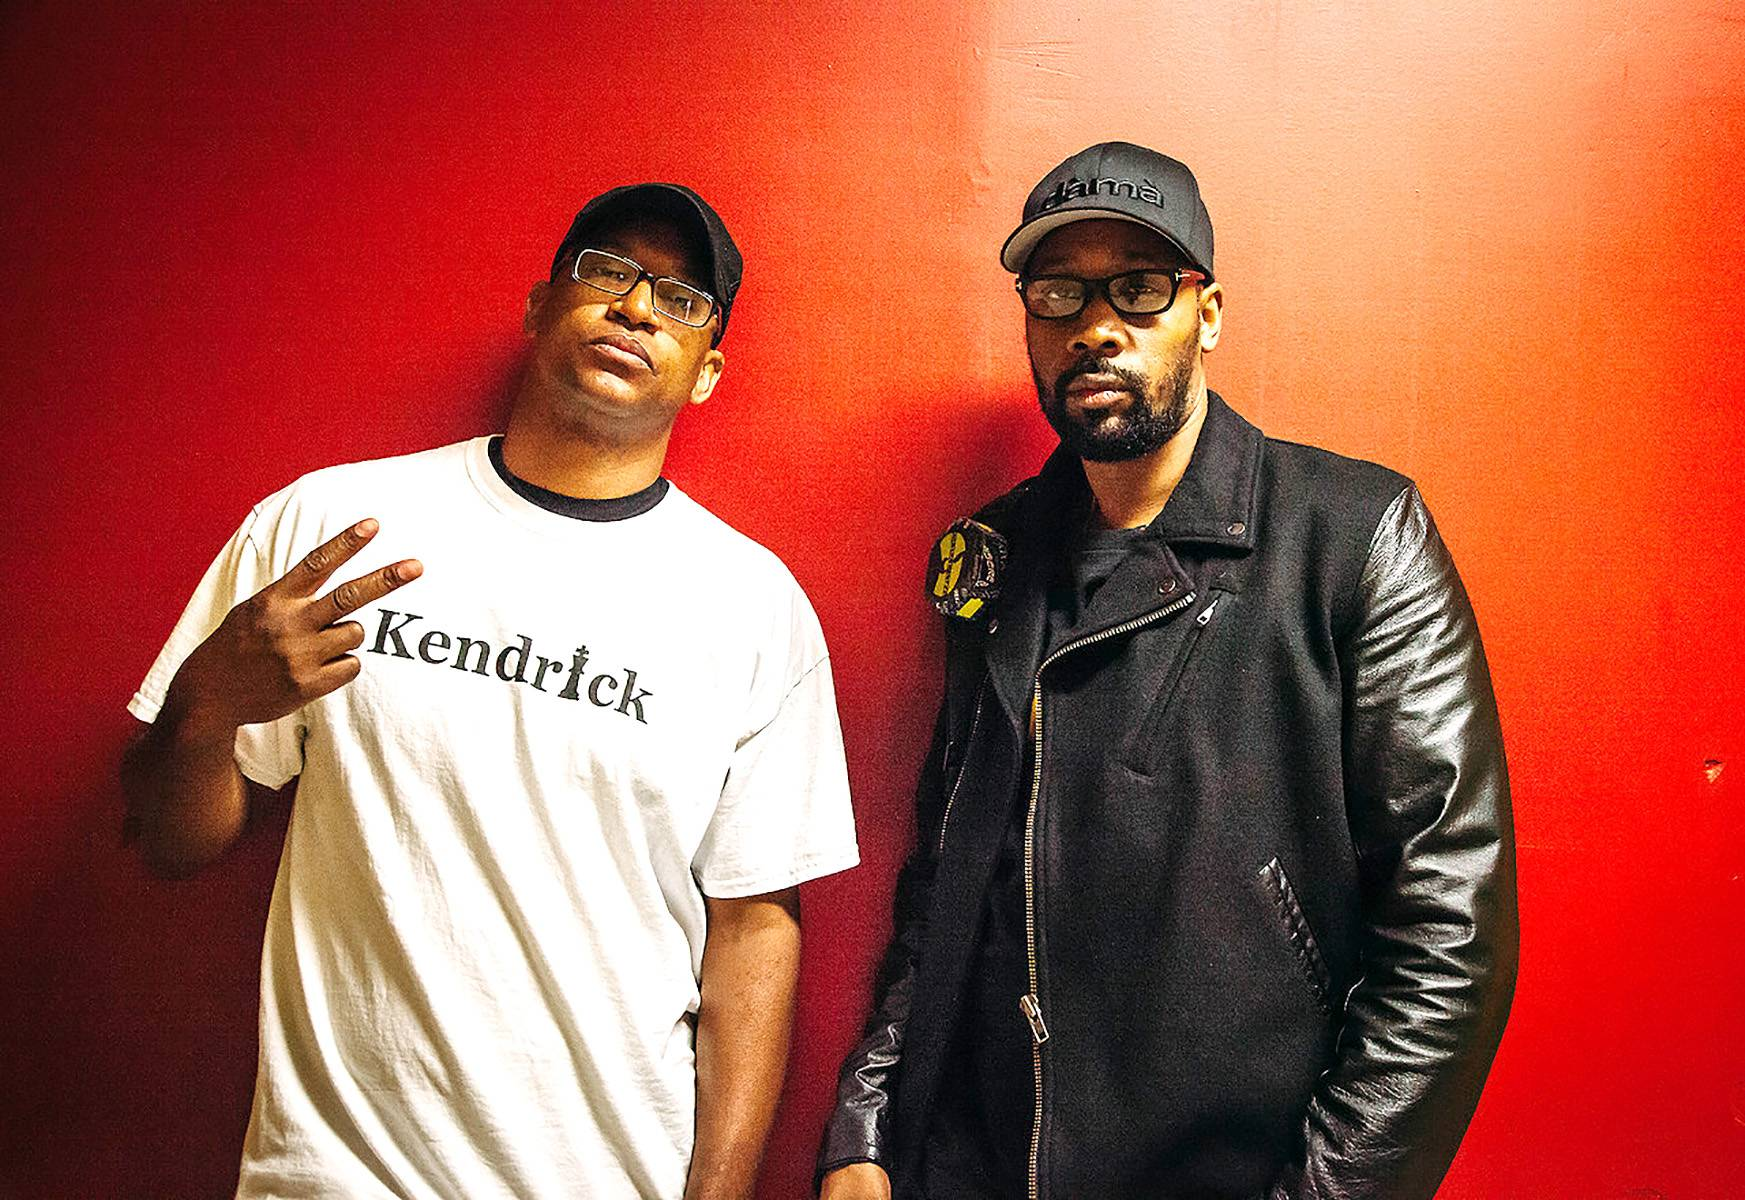 """Hip-Hop and Chess - RZA and Adisa Banjoko, founder of The Hip-Hop Chess Federation (HHCF), have teamed up to launch a chess and martial arts program in St. Louis in an effort to promote non-violence.The pair went to the World Chess Hall of Fame in St. Louis during #FergusonOctober, and spoke to four public schools over the course of a week, about the power of hip hop, chess, and nonviolence, and to remind the youth that they are powerful and they matter.They also screened Living Like Kings, a documentary on chess and urban youth, executive produced by Banjoko.""""It was a pleasure for me to join the HHCF, the WCHOF and Demetrius Johnson in St. Louis to help spread the cultures of hip hop chess and martial arts. The trip was enlightening, engaging and uplifting,"""" said RZA, who serves as director of outreach for HHCF.Visit www.HipHopChess.com&nbs..."""